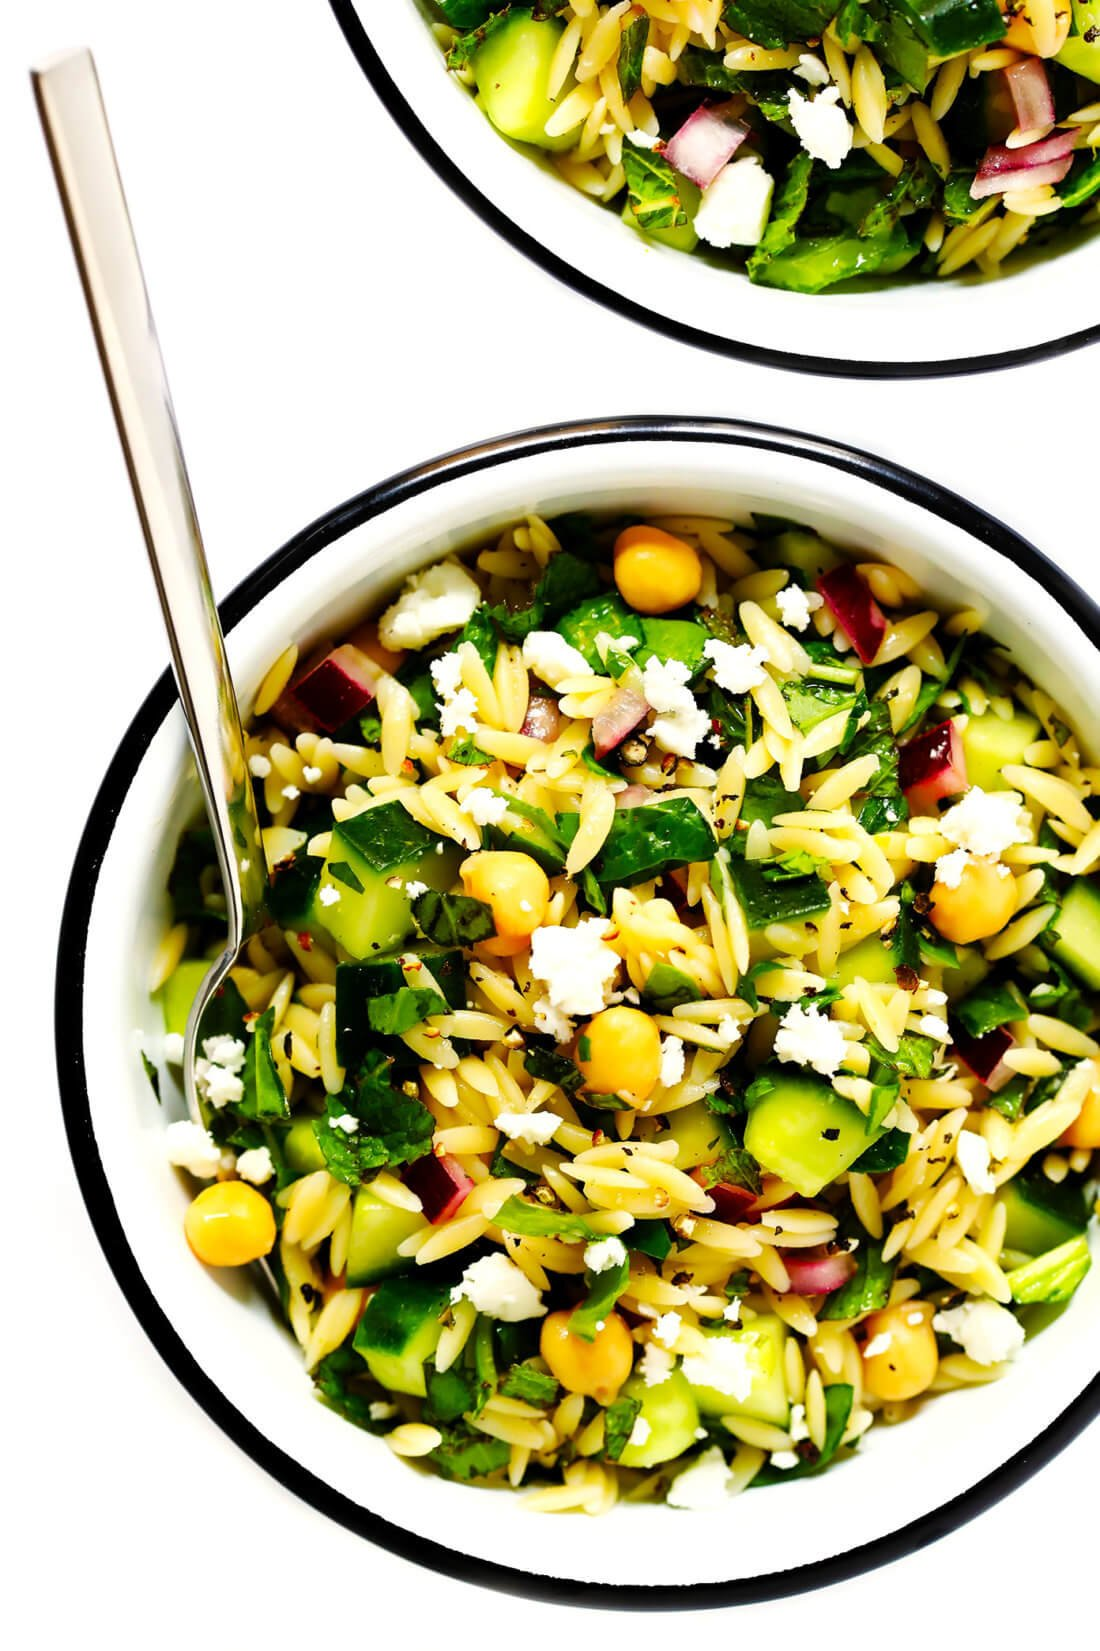 Lemon Orzo Chickpea Pasta Salad Recipe